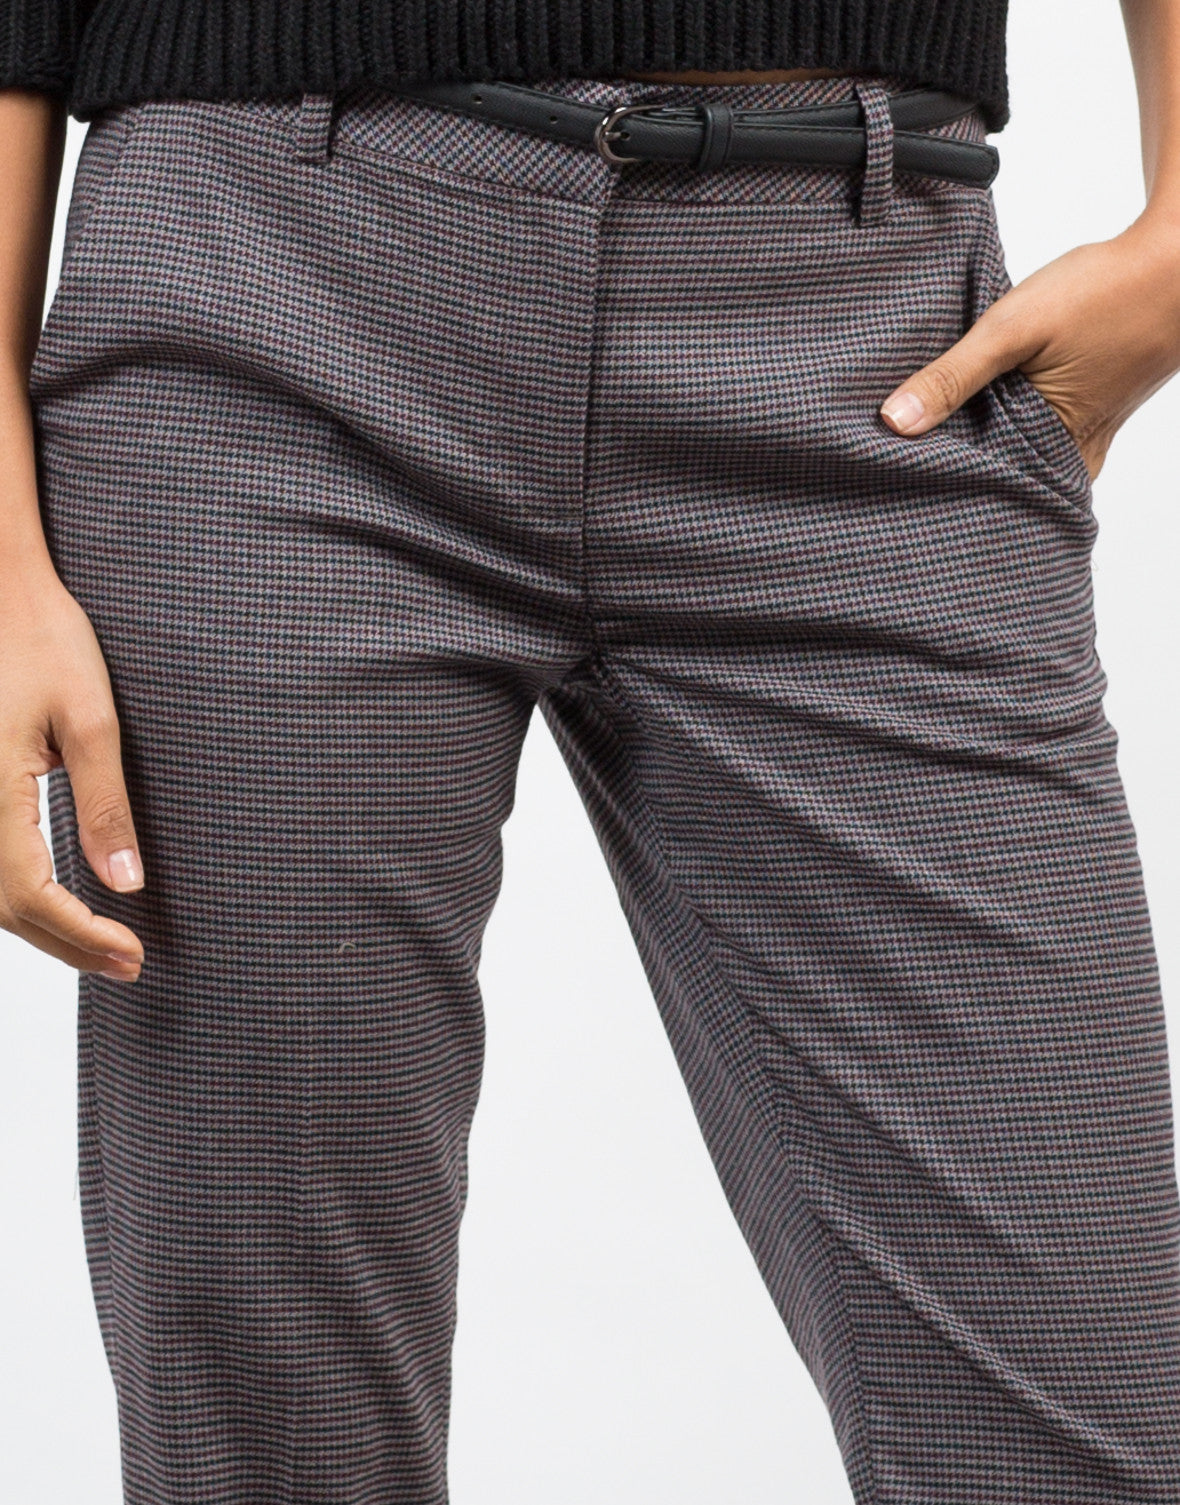 Detail of Belted Houndstooth Pants